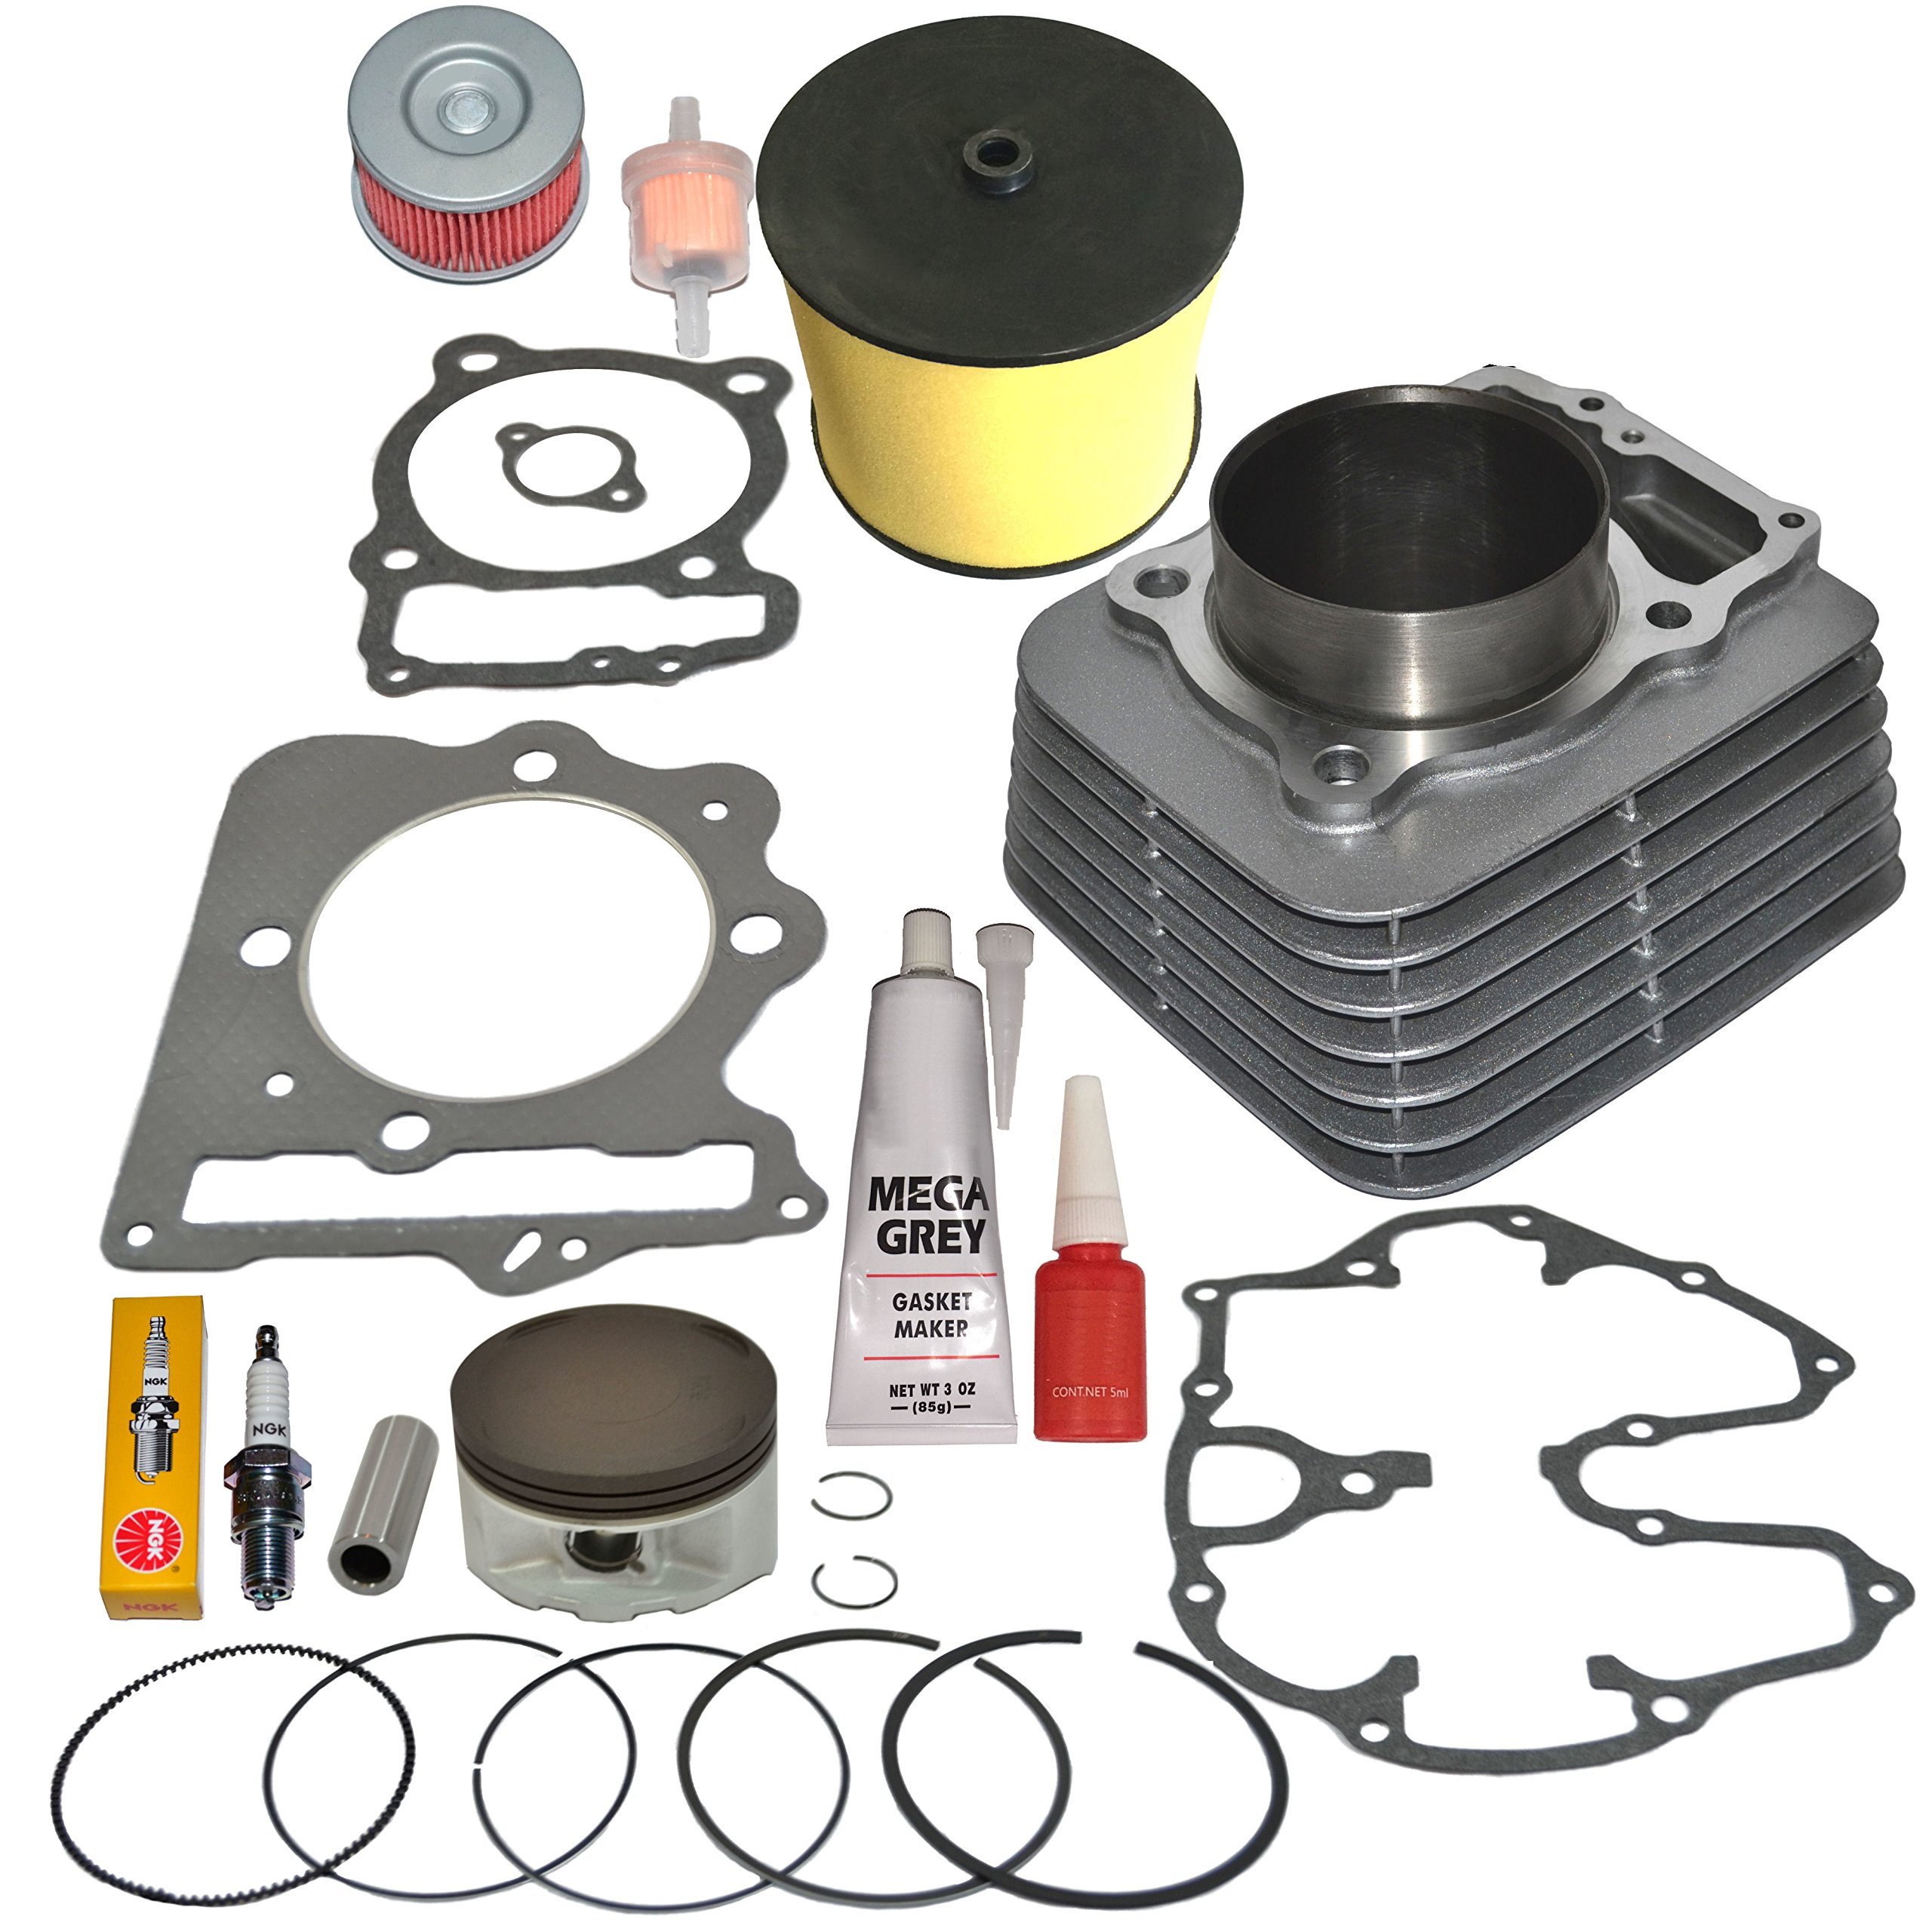 honda 400ex parts amazon compiston cylinder gasket rings air filter top end kit set fits honda trx400ex trx 400ex 1999